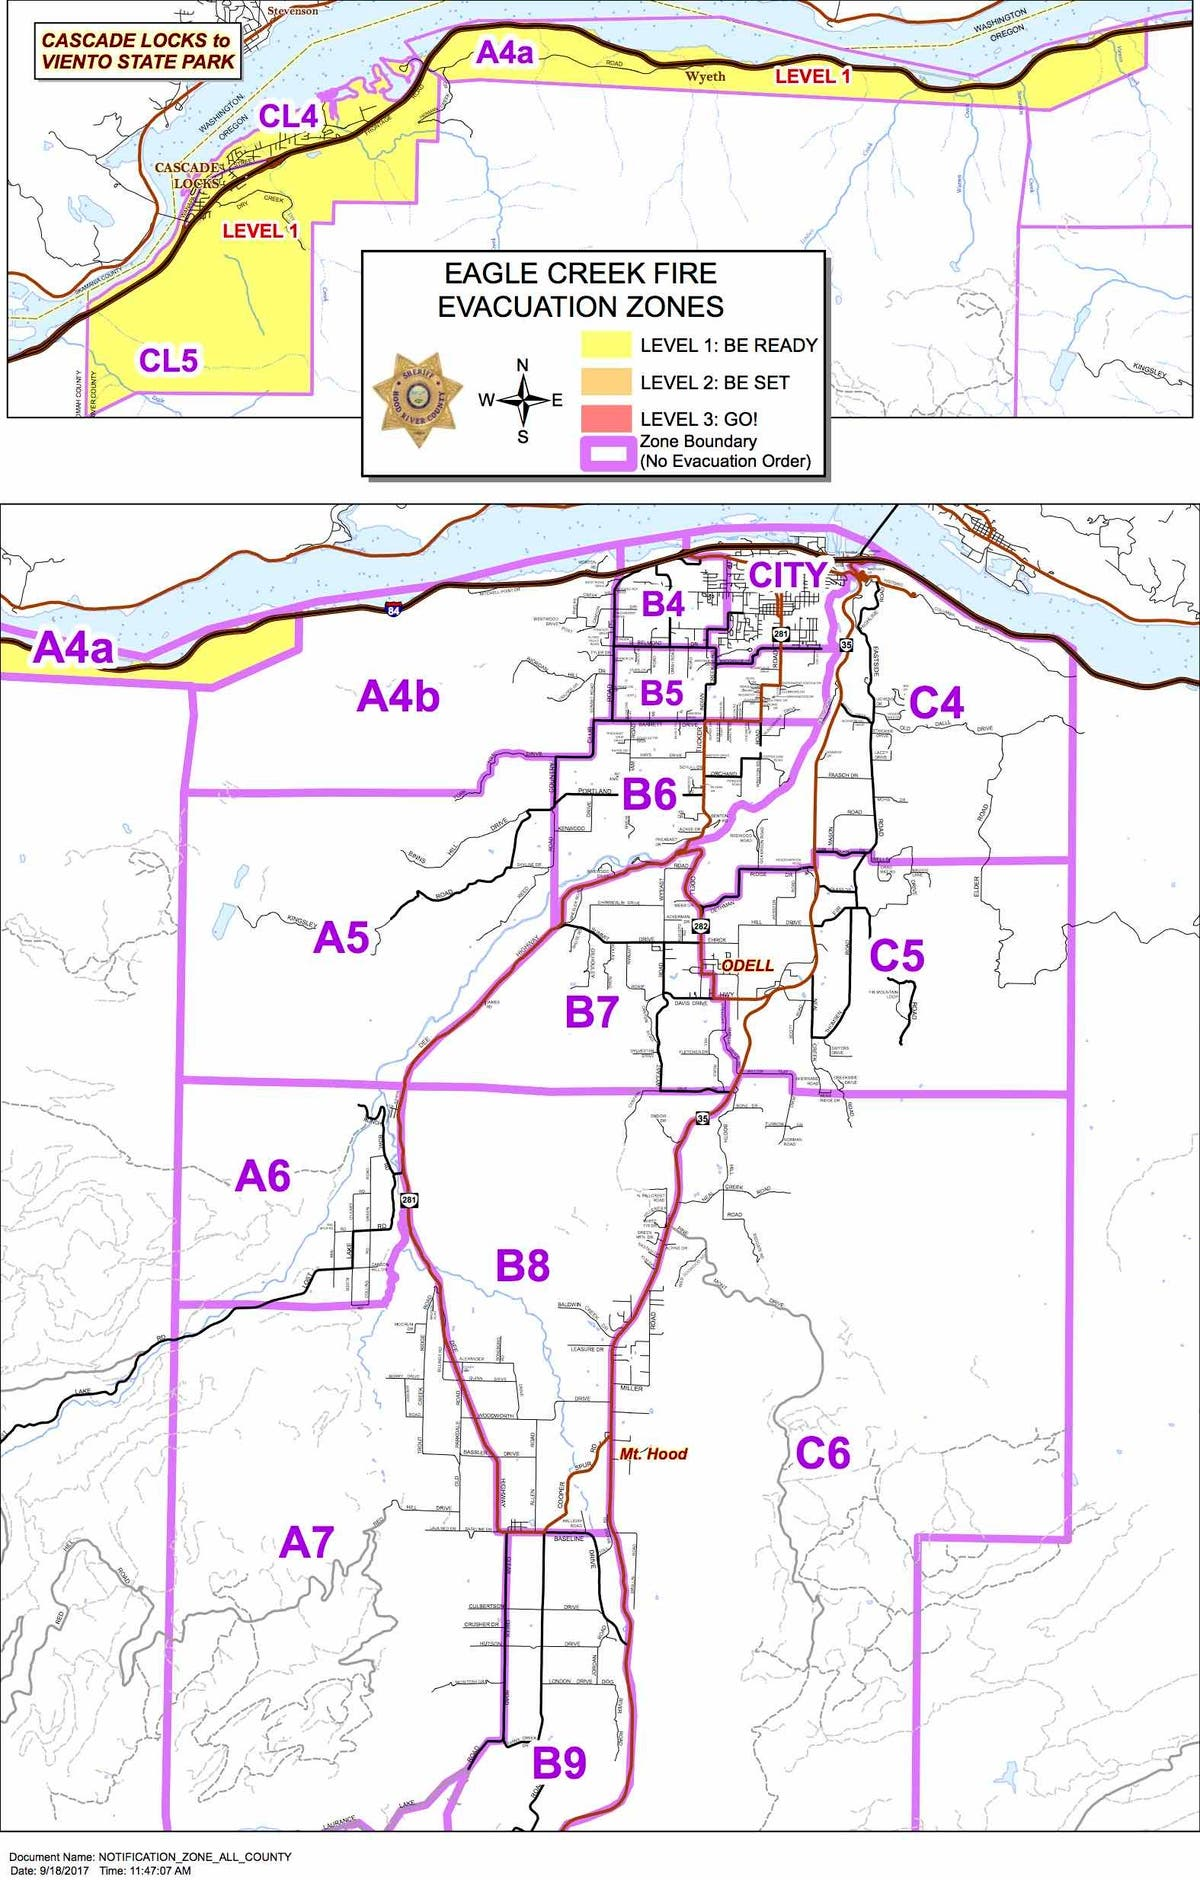 The Latest Map Depicting Evacuation Zones By Color Red Level 3 Orange 2 Yellow 1 Photo Courtesy Multnomah County